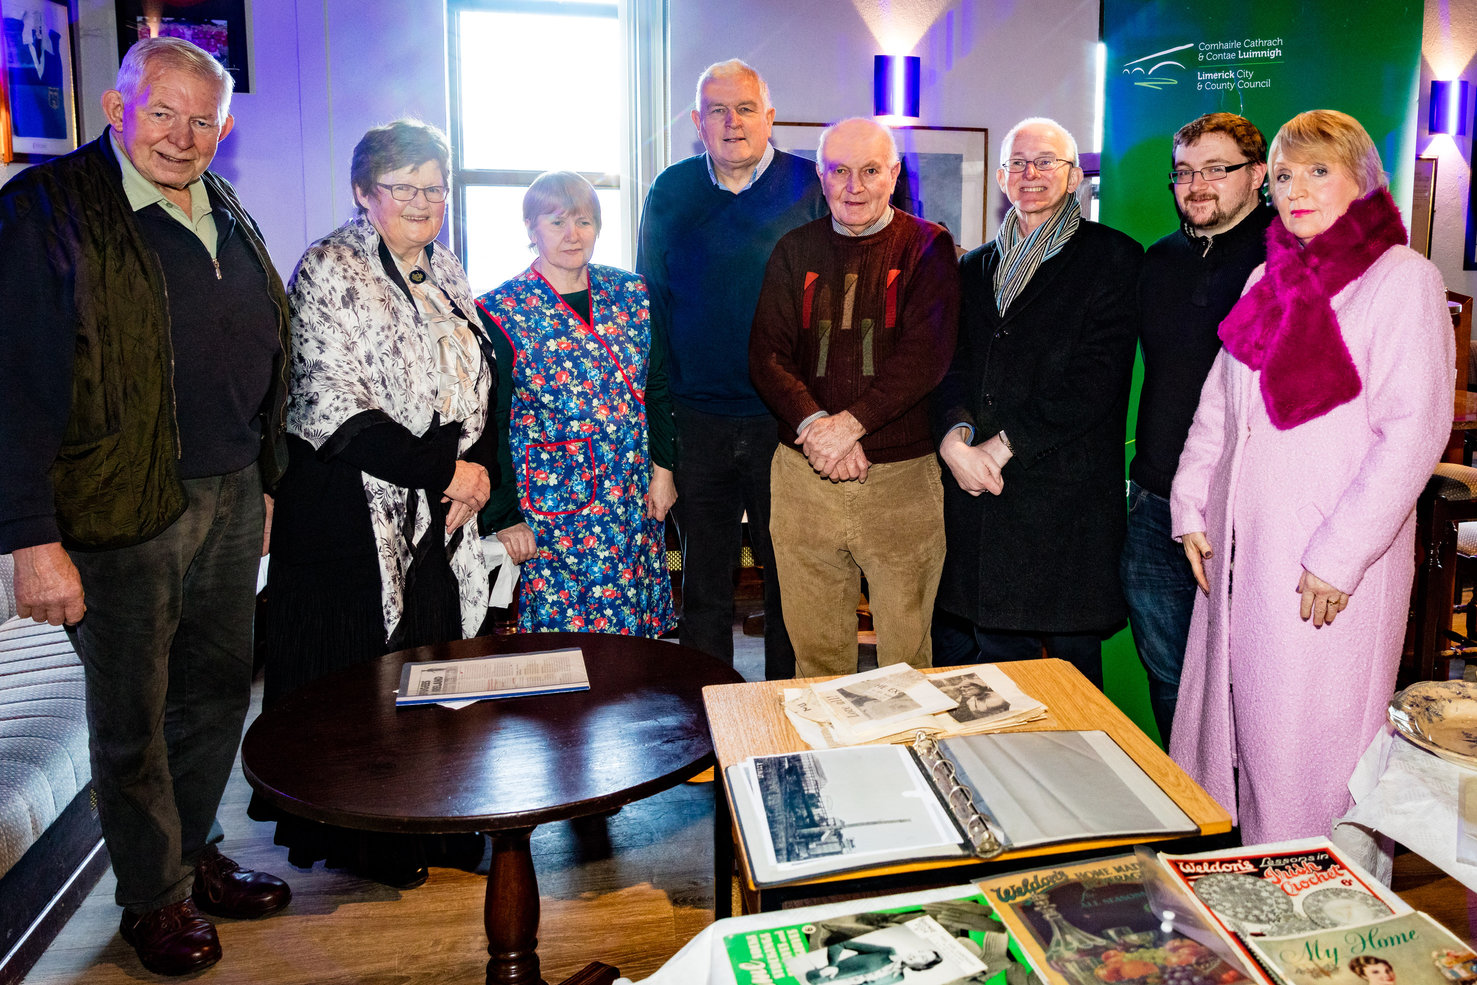 Mungret Pop-Up Museum